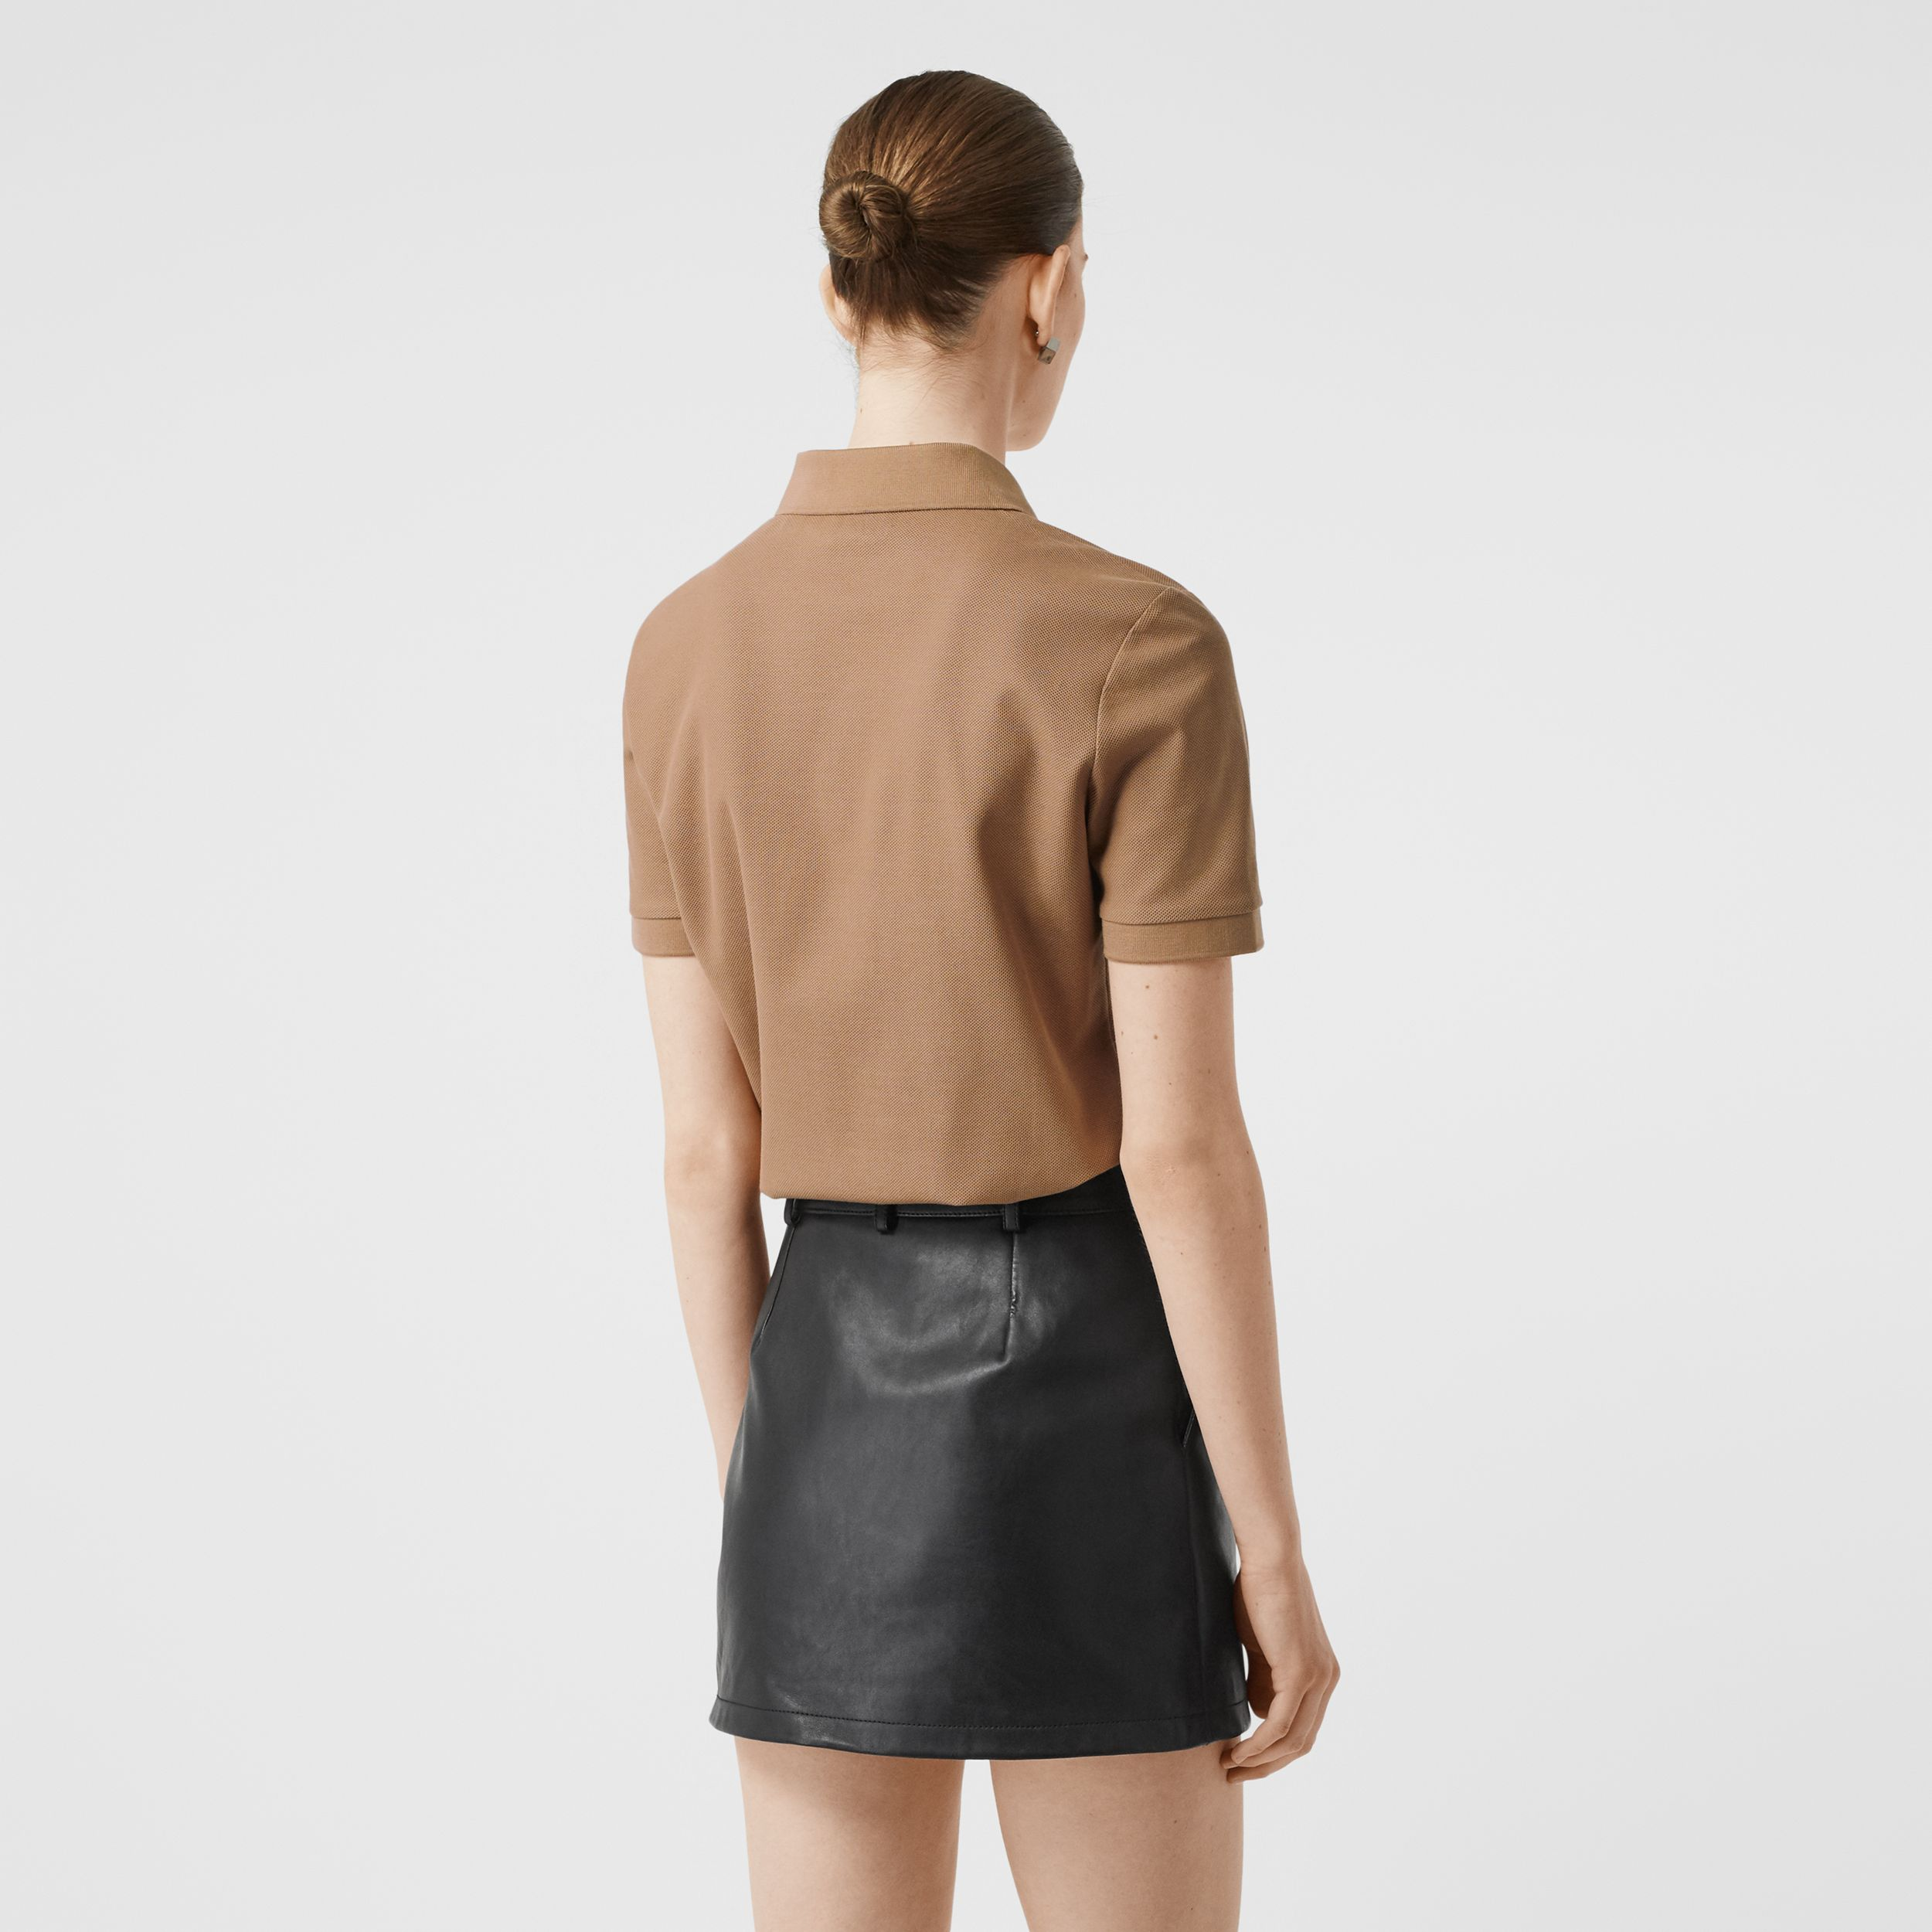 Monogram Motif Cotton Piqué Polo Shirt in Camel - Women | Burberry United Kingdom - 3